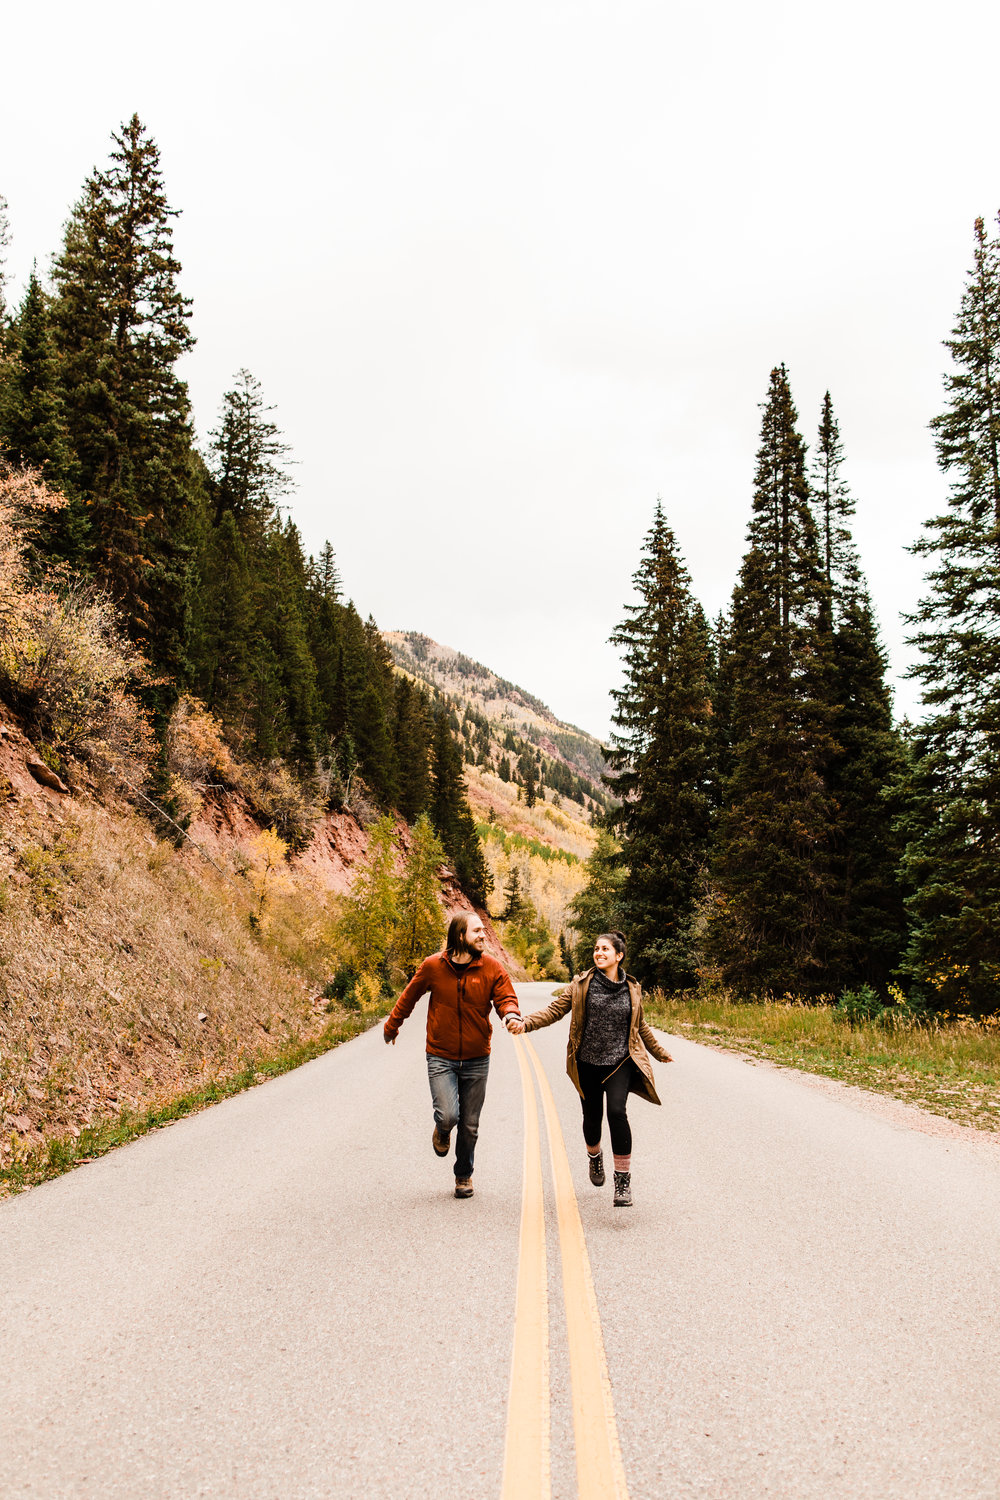 Sheena_Shahangian_Photography_Aspen_Colorado_Maroon_Bells_Couples_Adventure_Session_Sheena_Ed-1.jpg